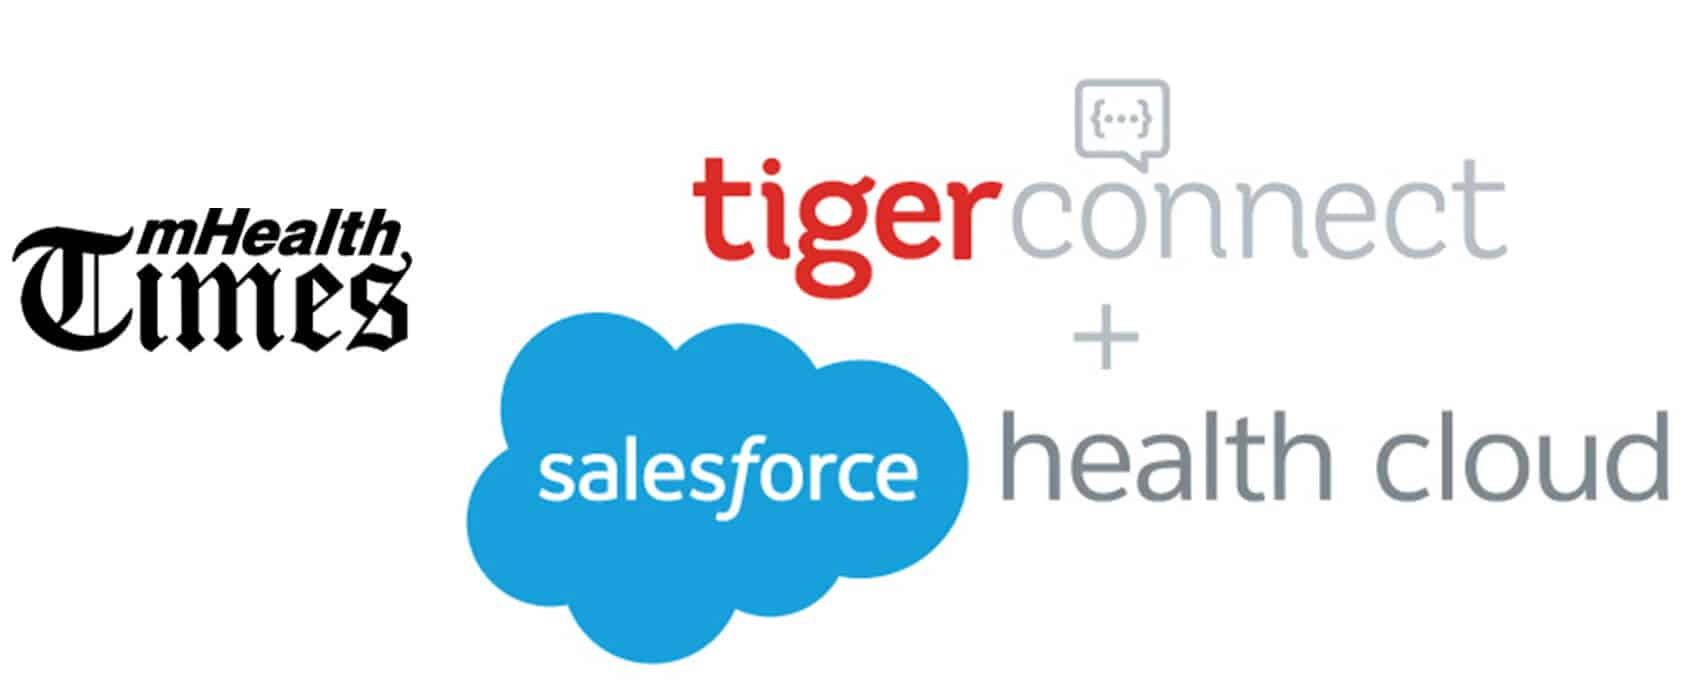 TigerText Extends Capabilities of Salesforce Health Cloud with Secure Messaging App